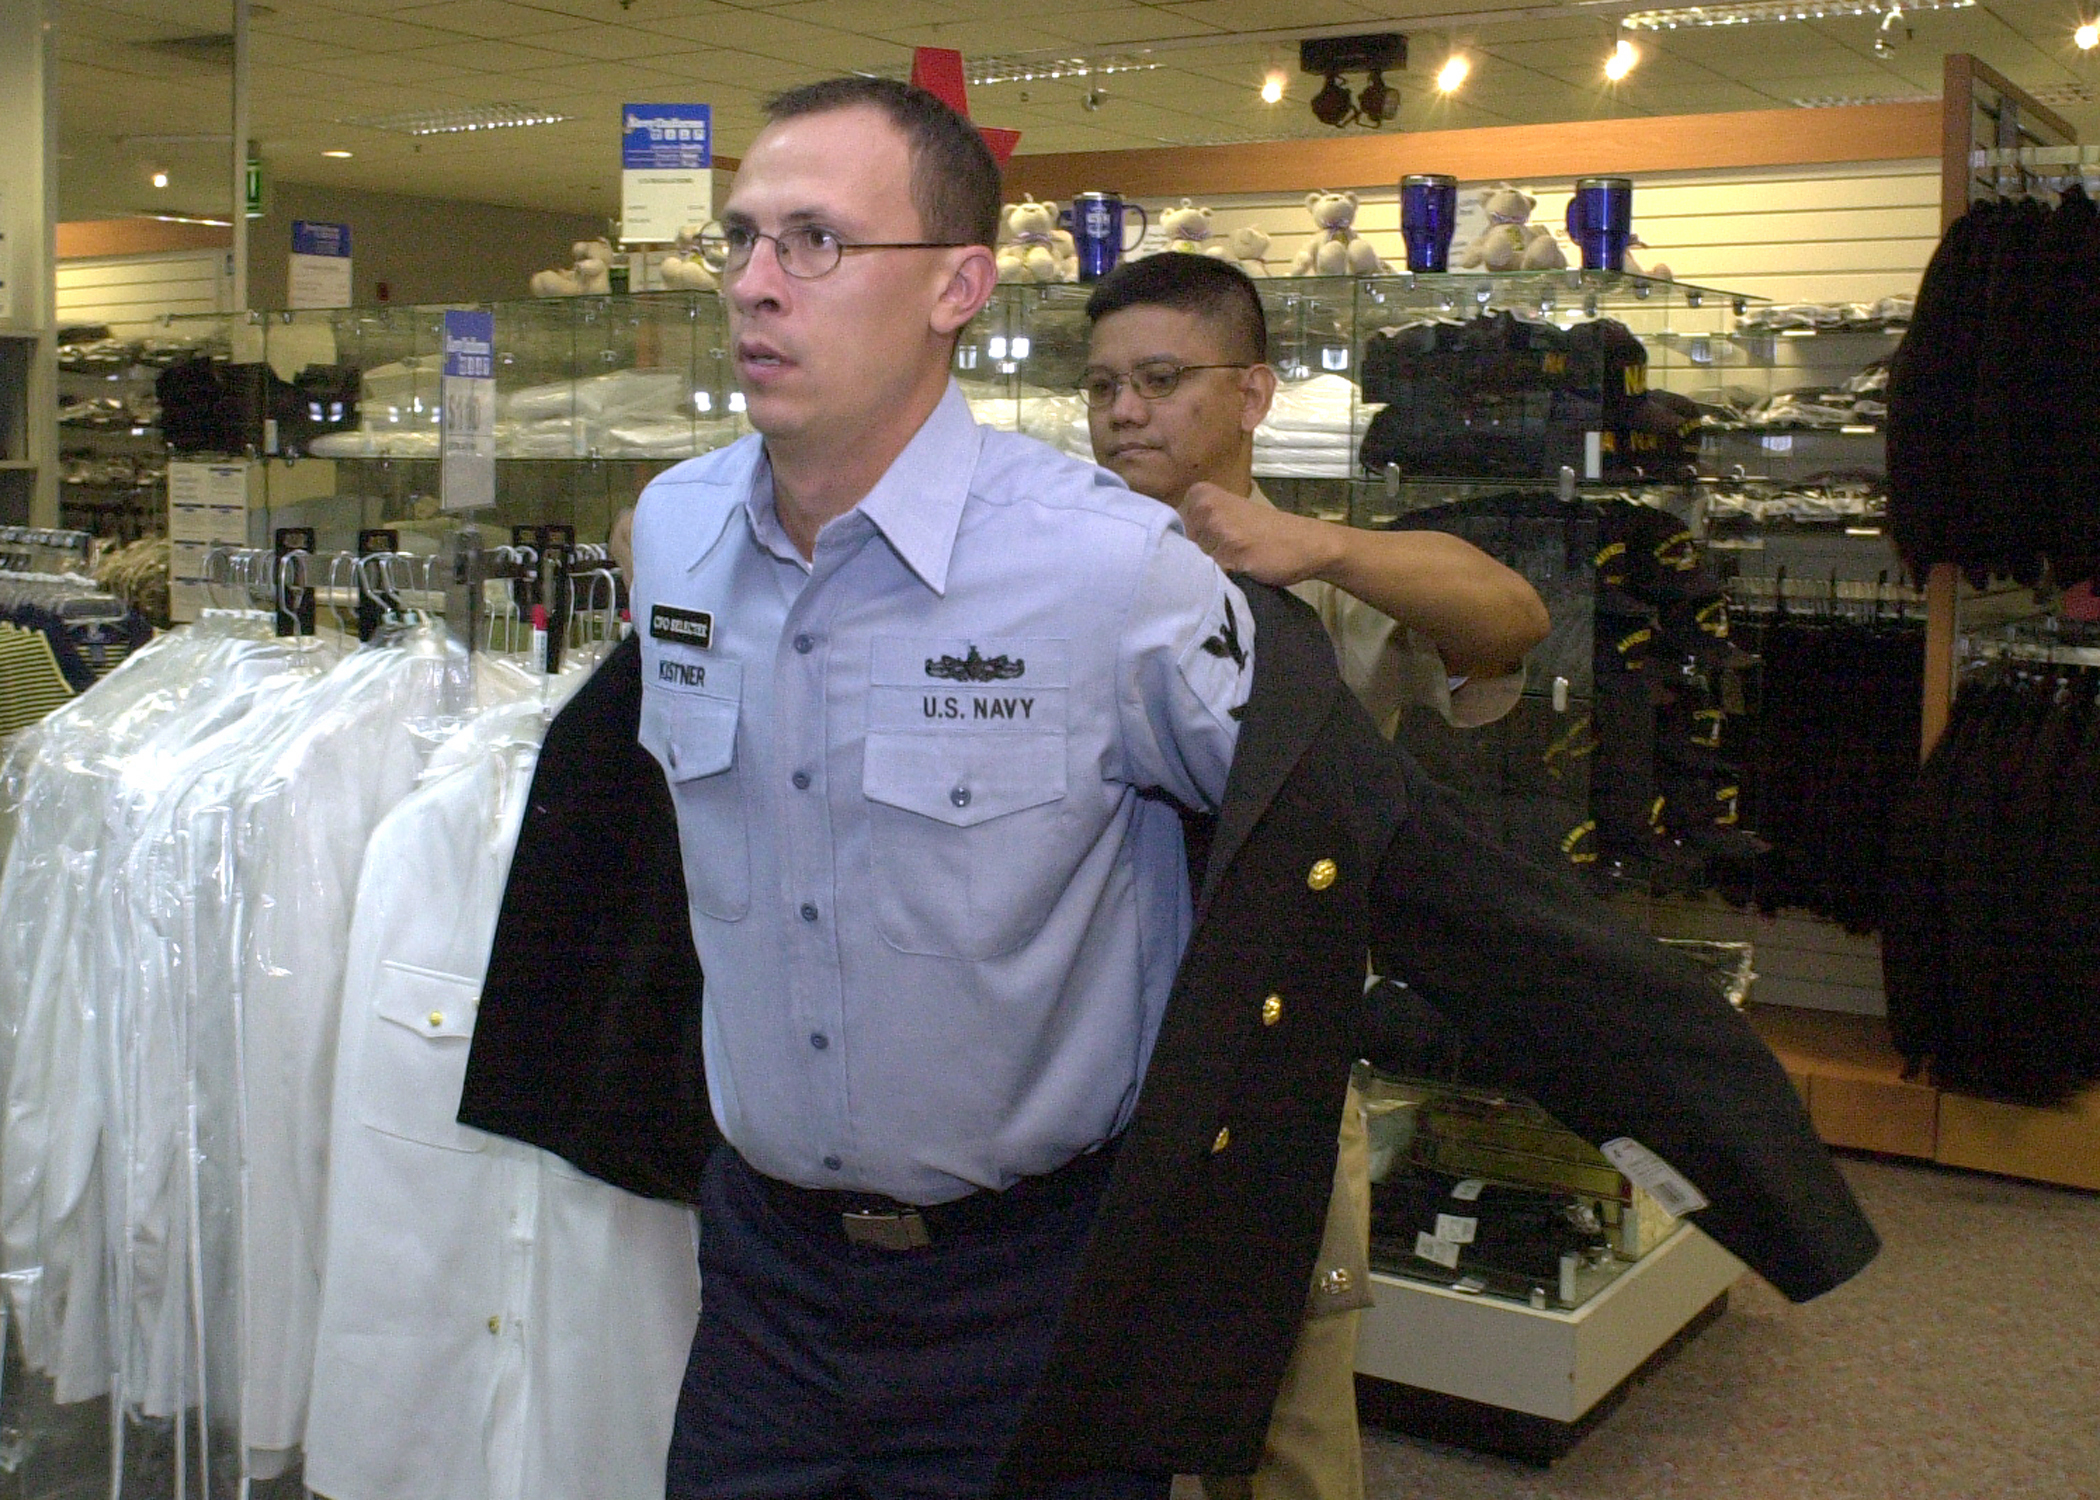 ... Navy Exchange uniform store at Naval Station Naples, Italy with the